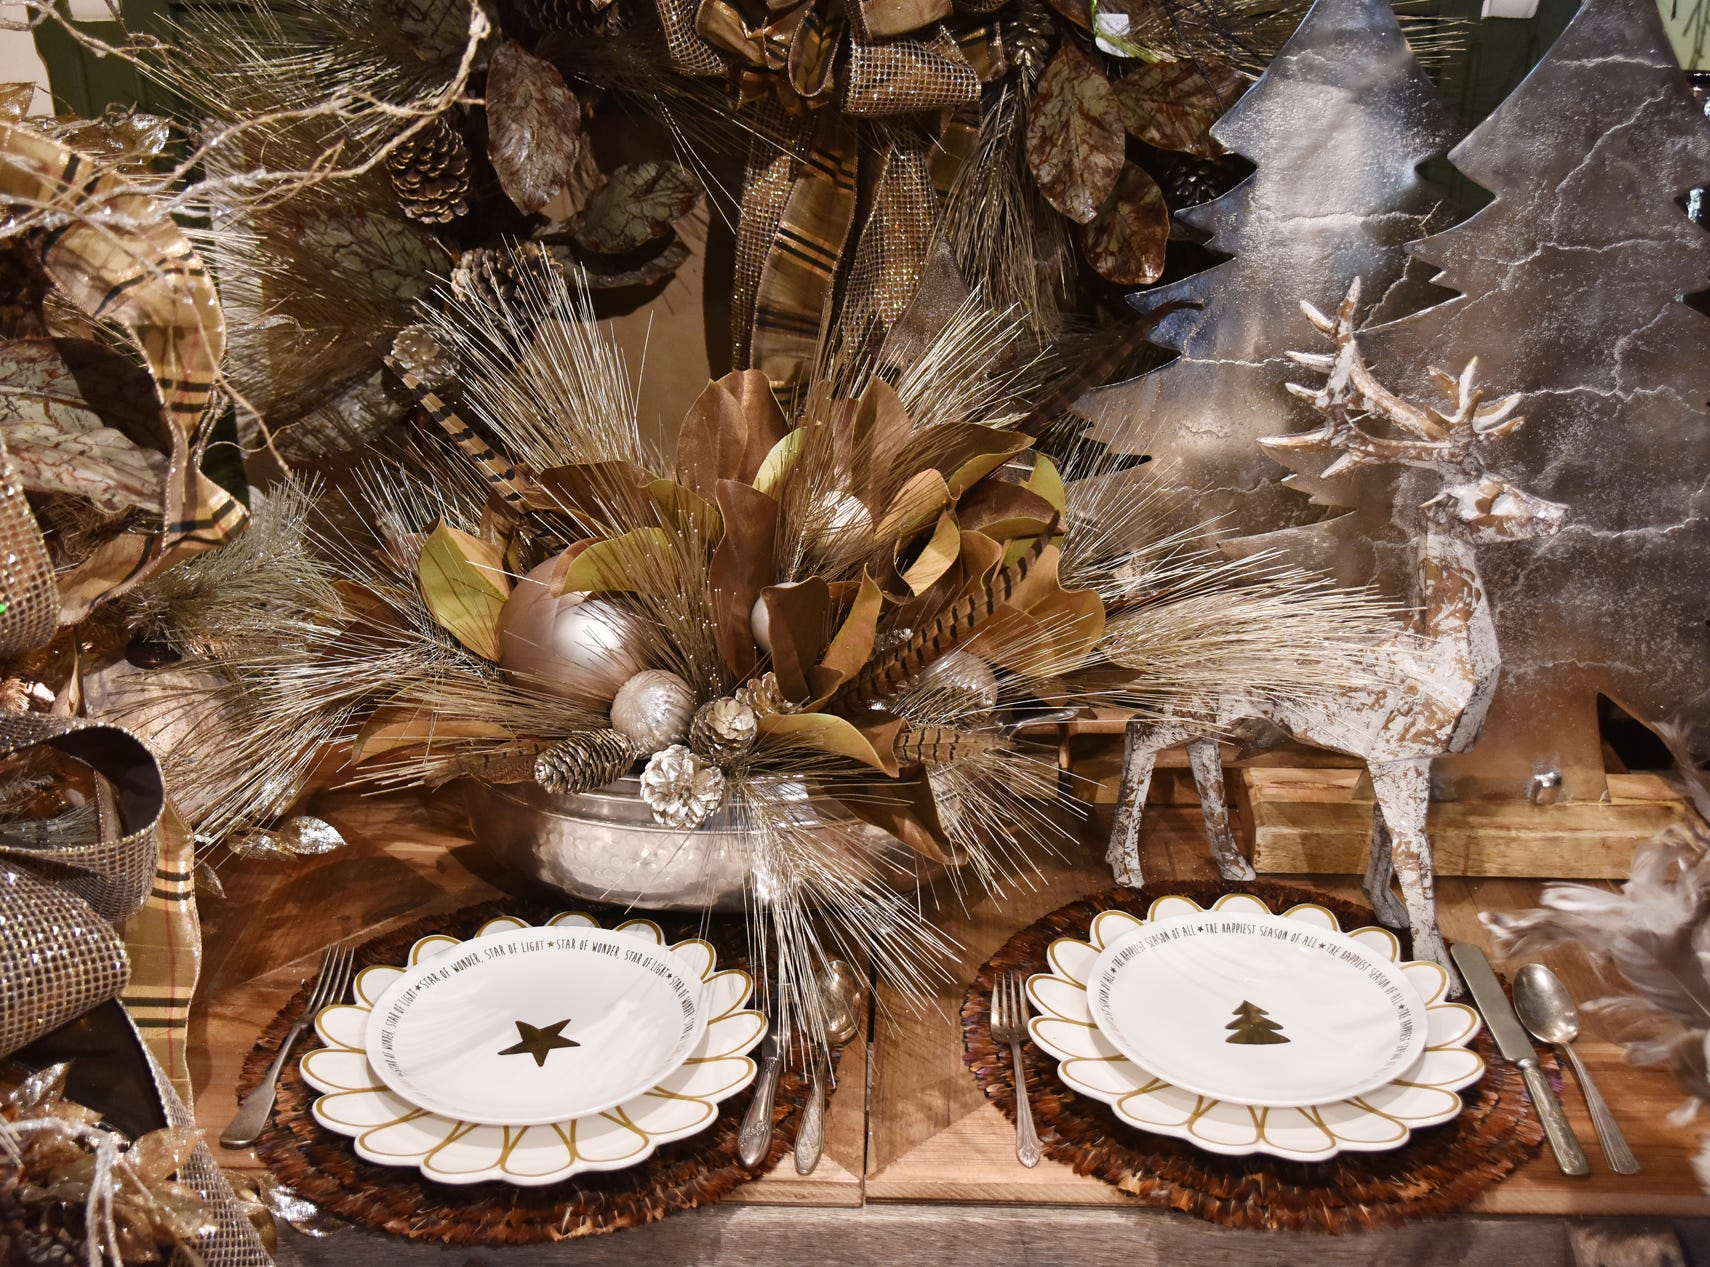 A tablescape with mixed plantinum, browns, bronzes tones and feathers for a sophisticated woodsy look.